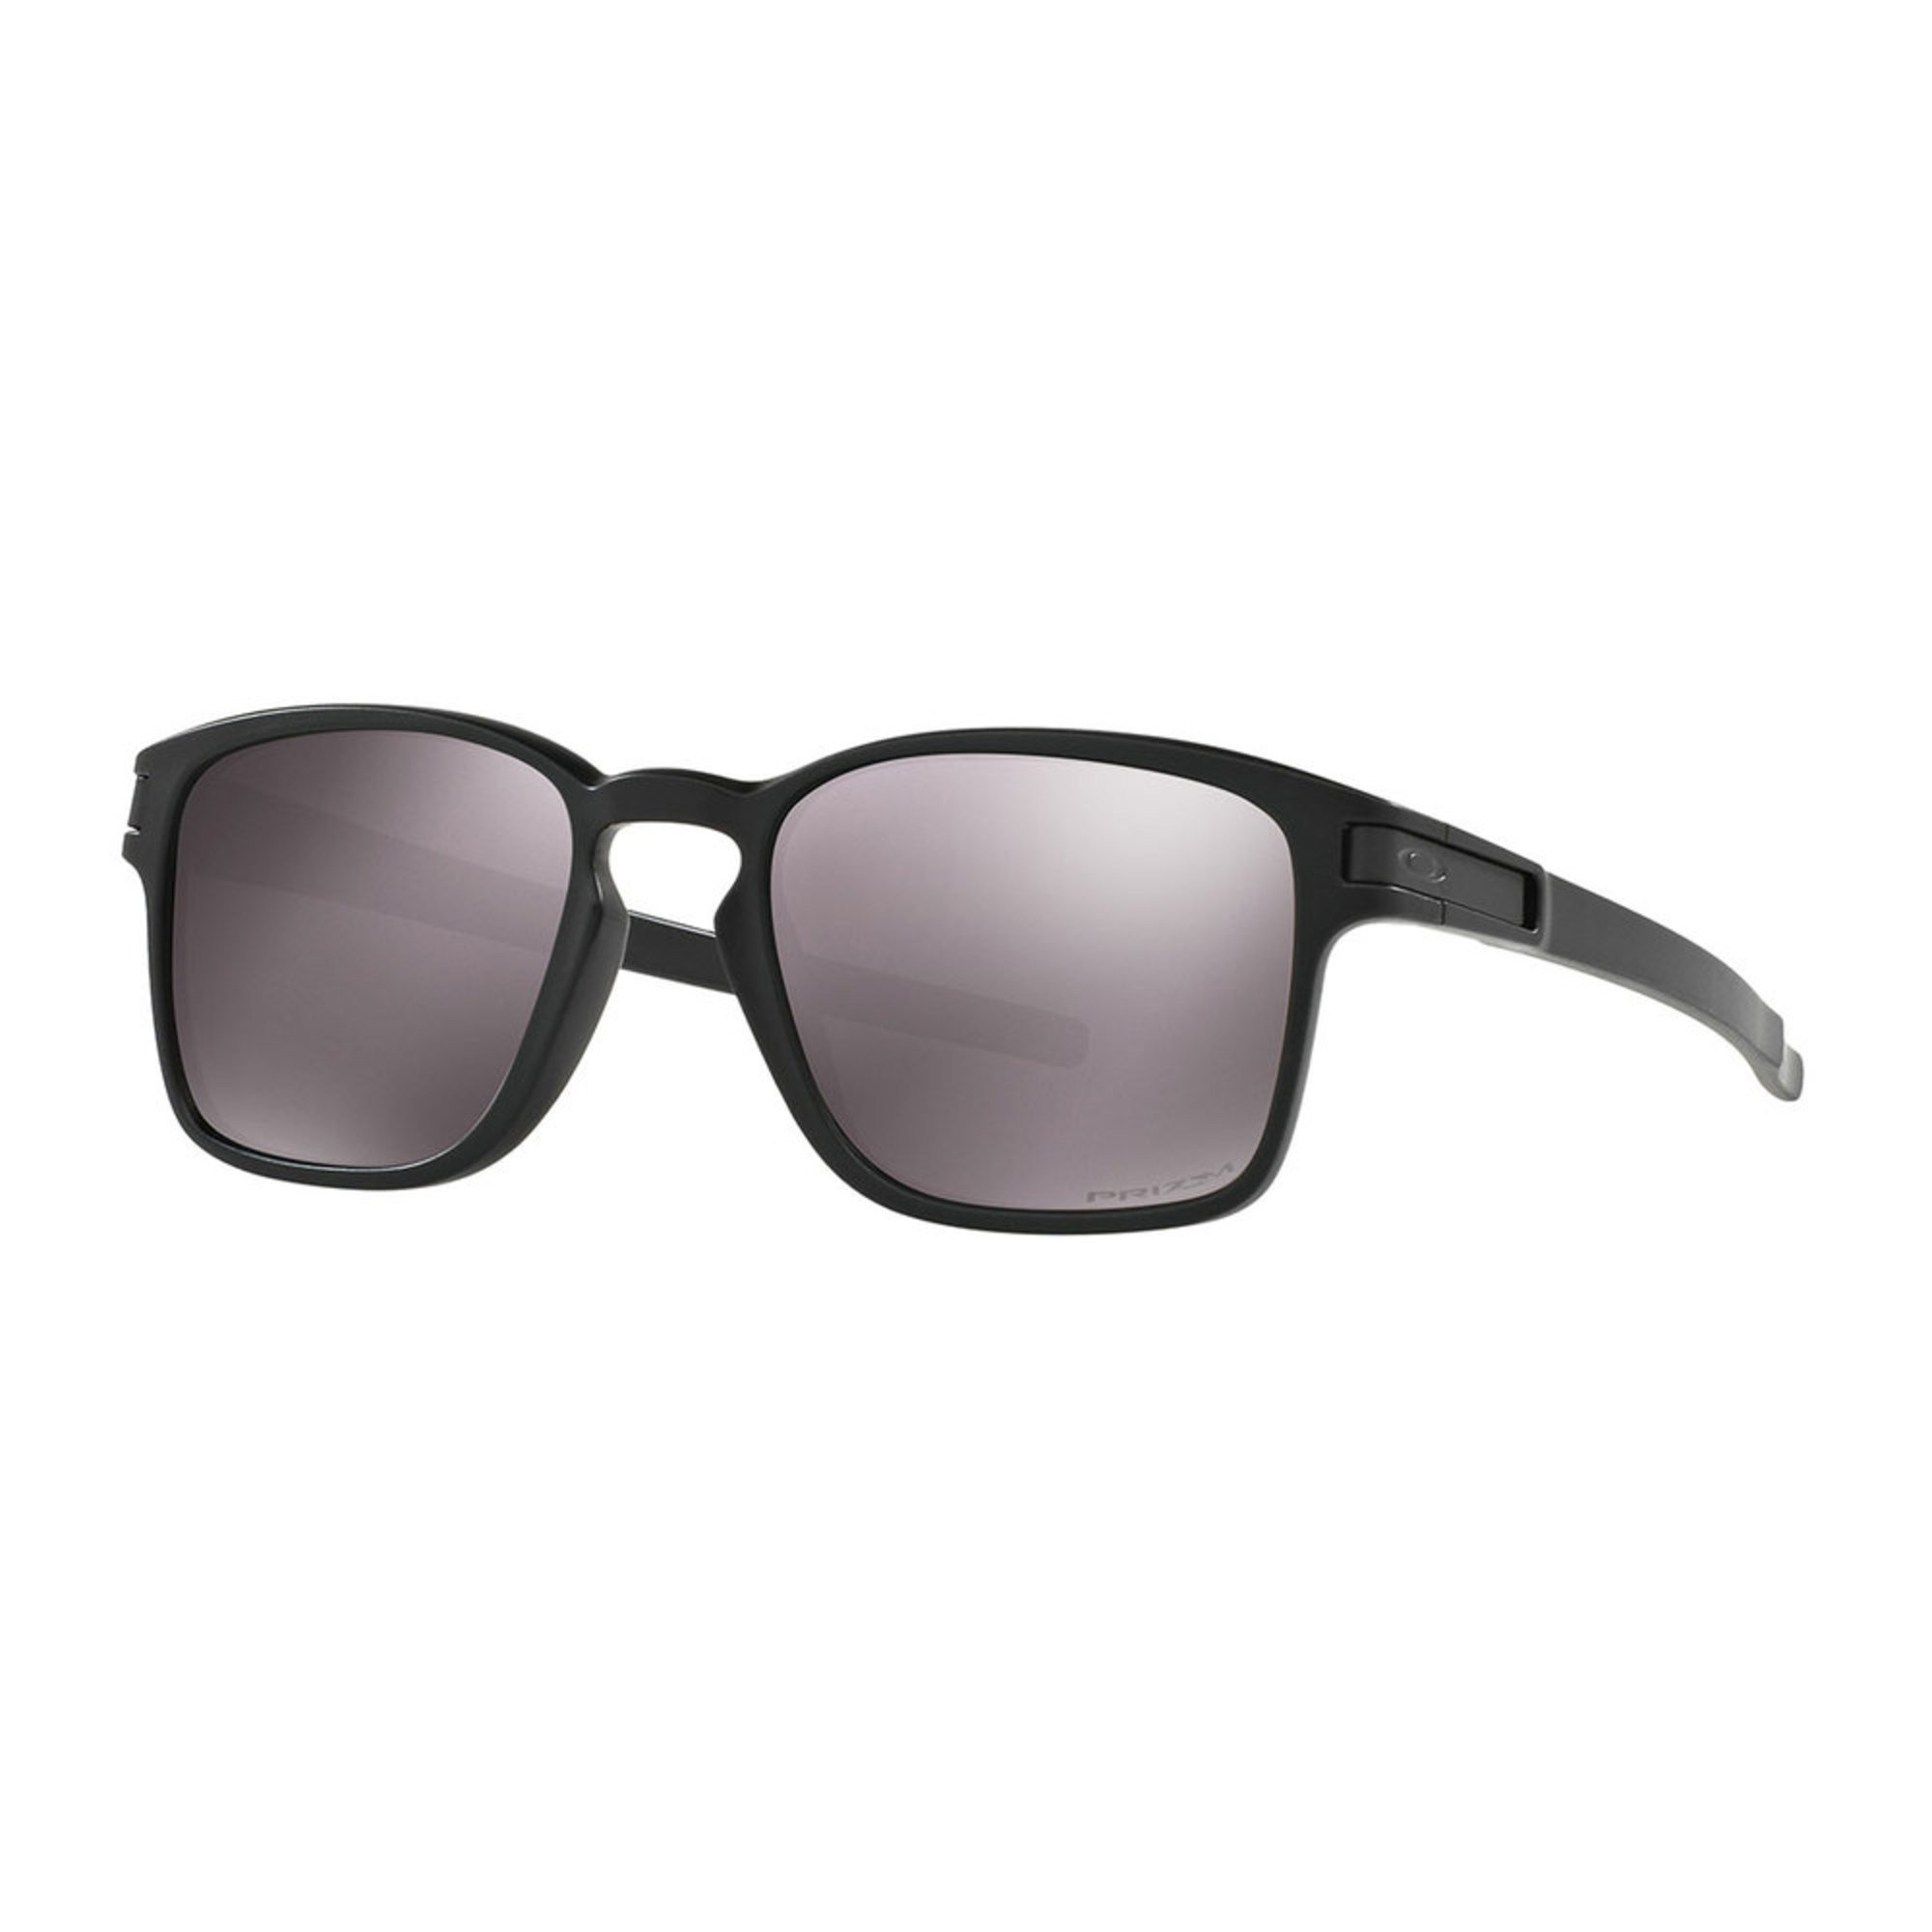 23ef21b696 Oakley Trillbe X 52mm Polarized Sunglasses - Bitterroot Public Library